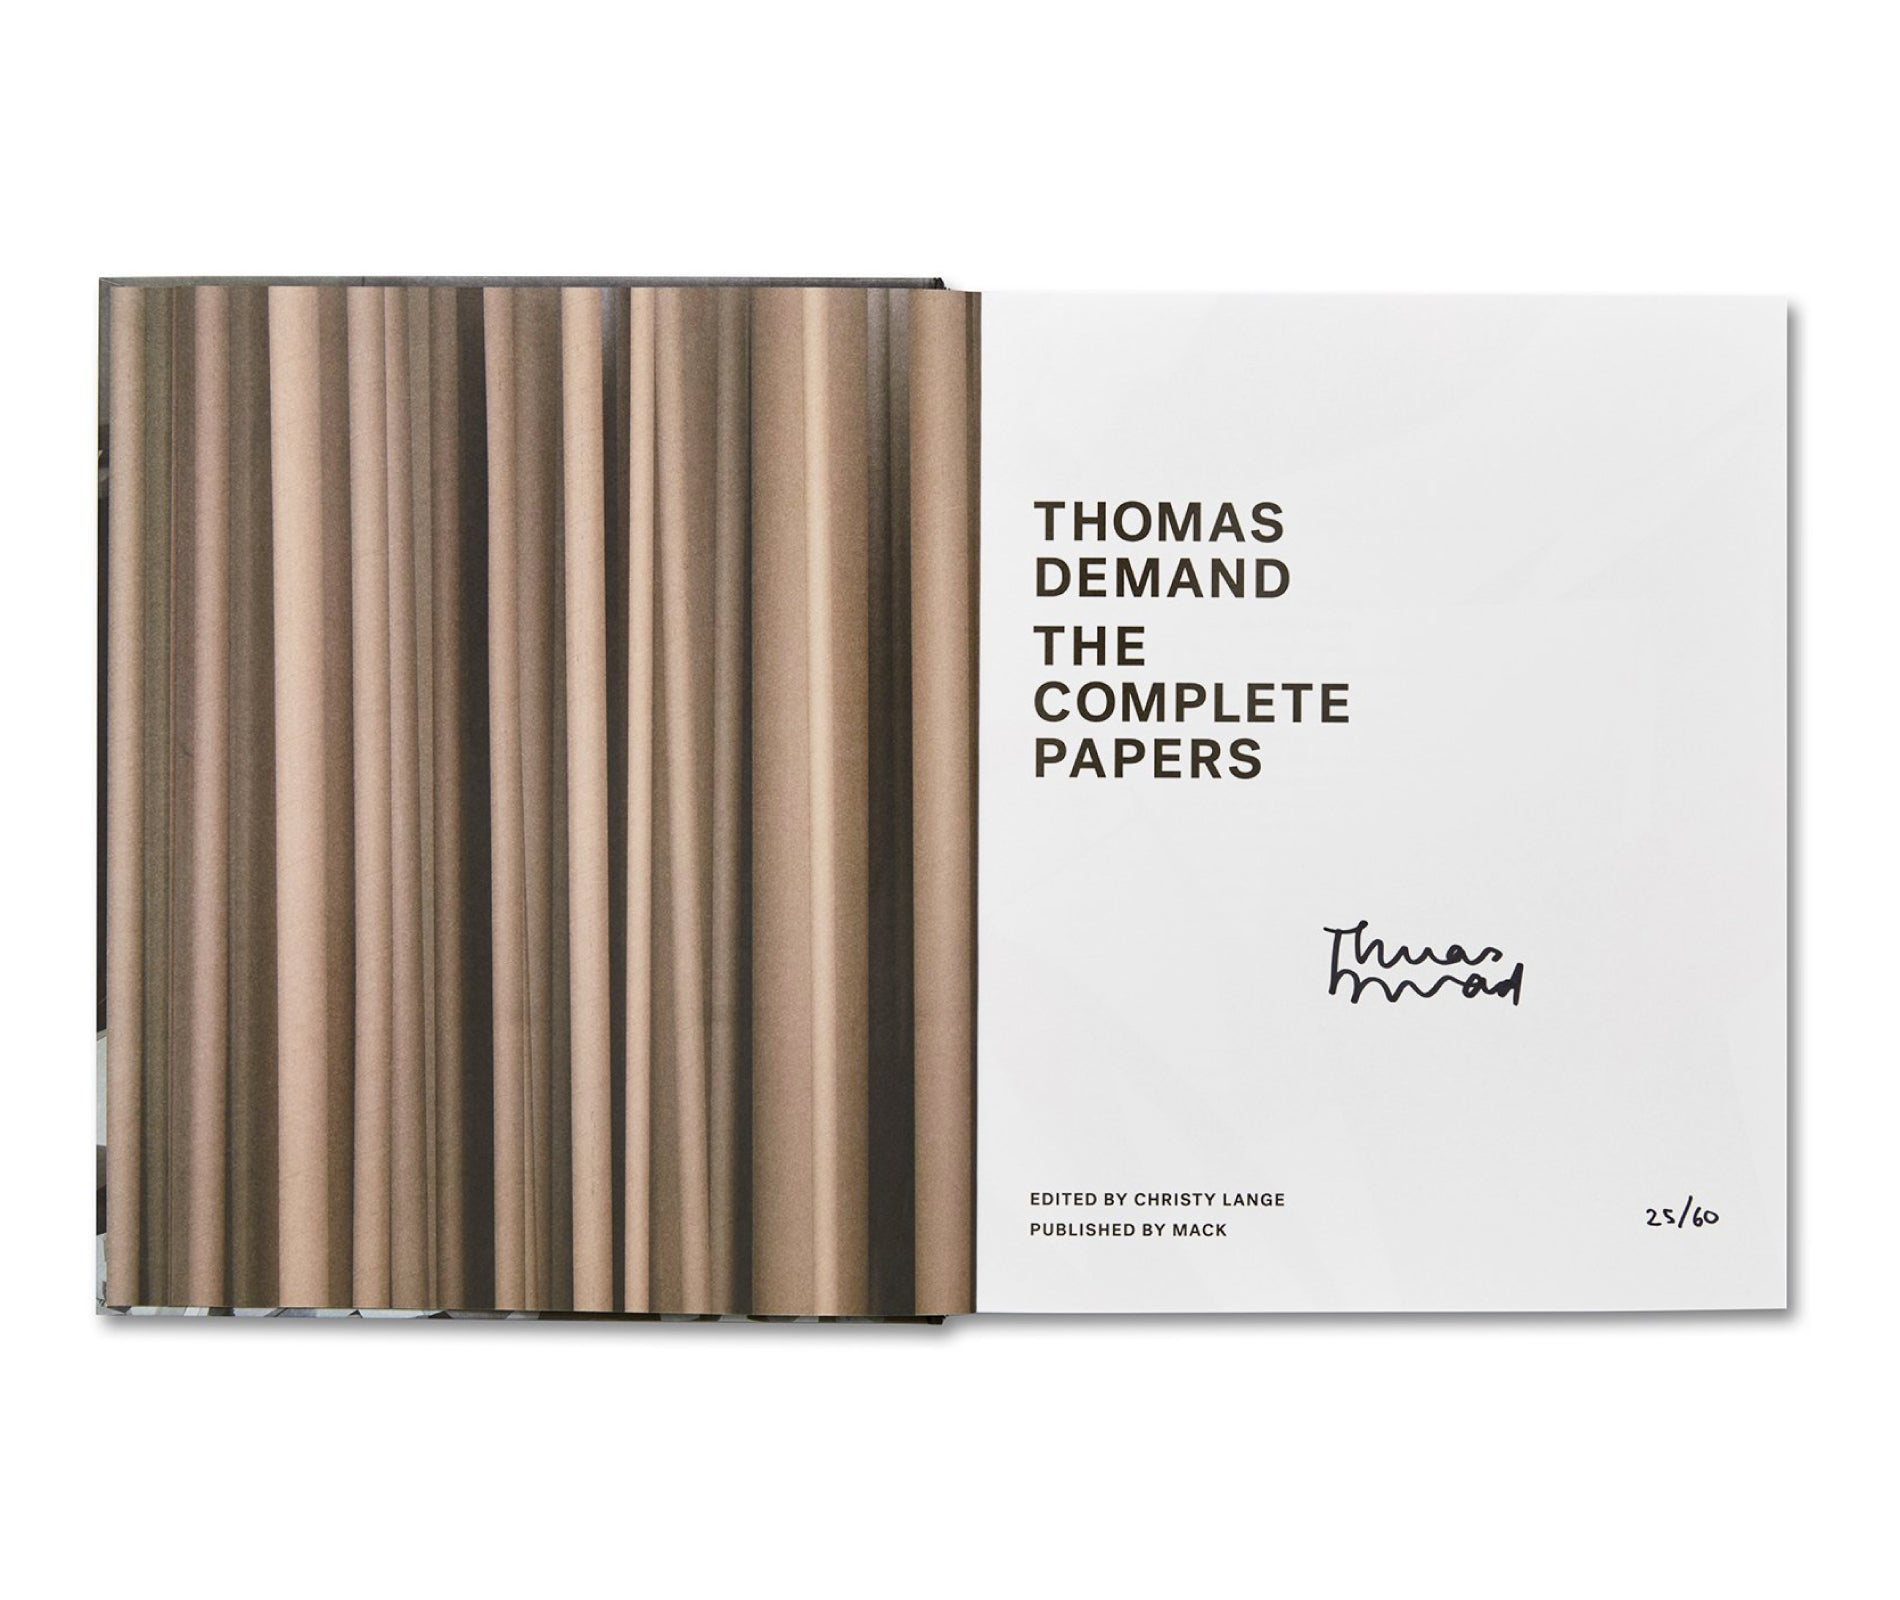 THE COMPLETE PAPERS by Thomas Demand [SPECIAL EDITION]